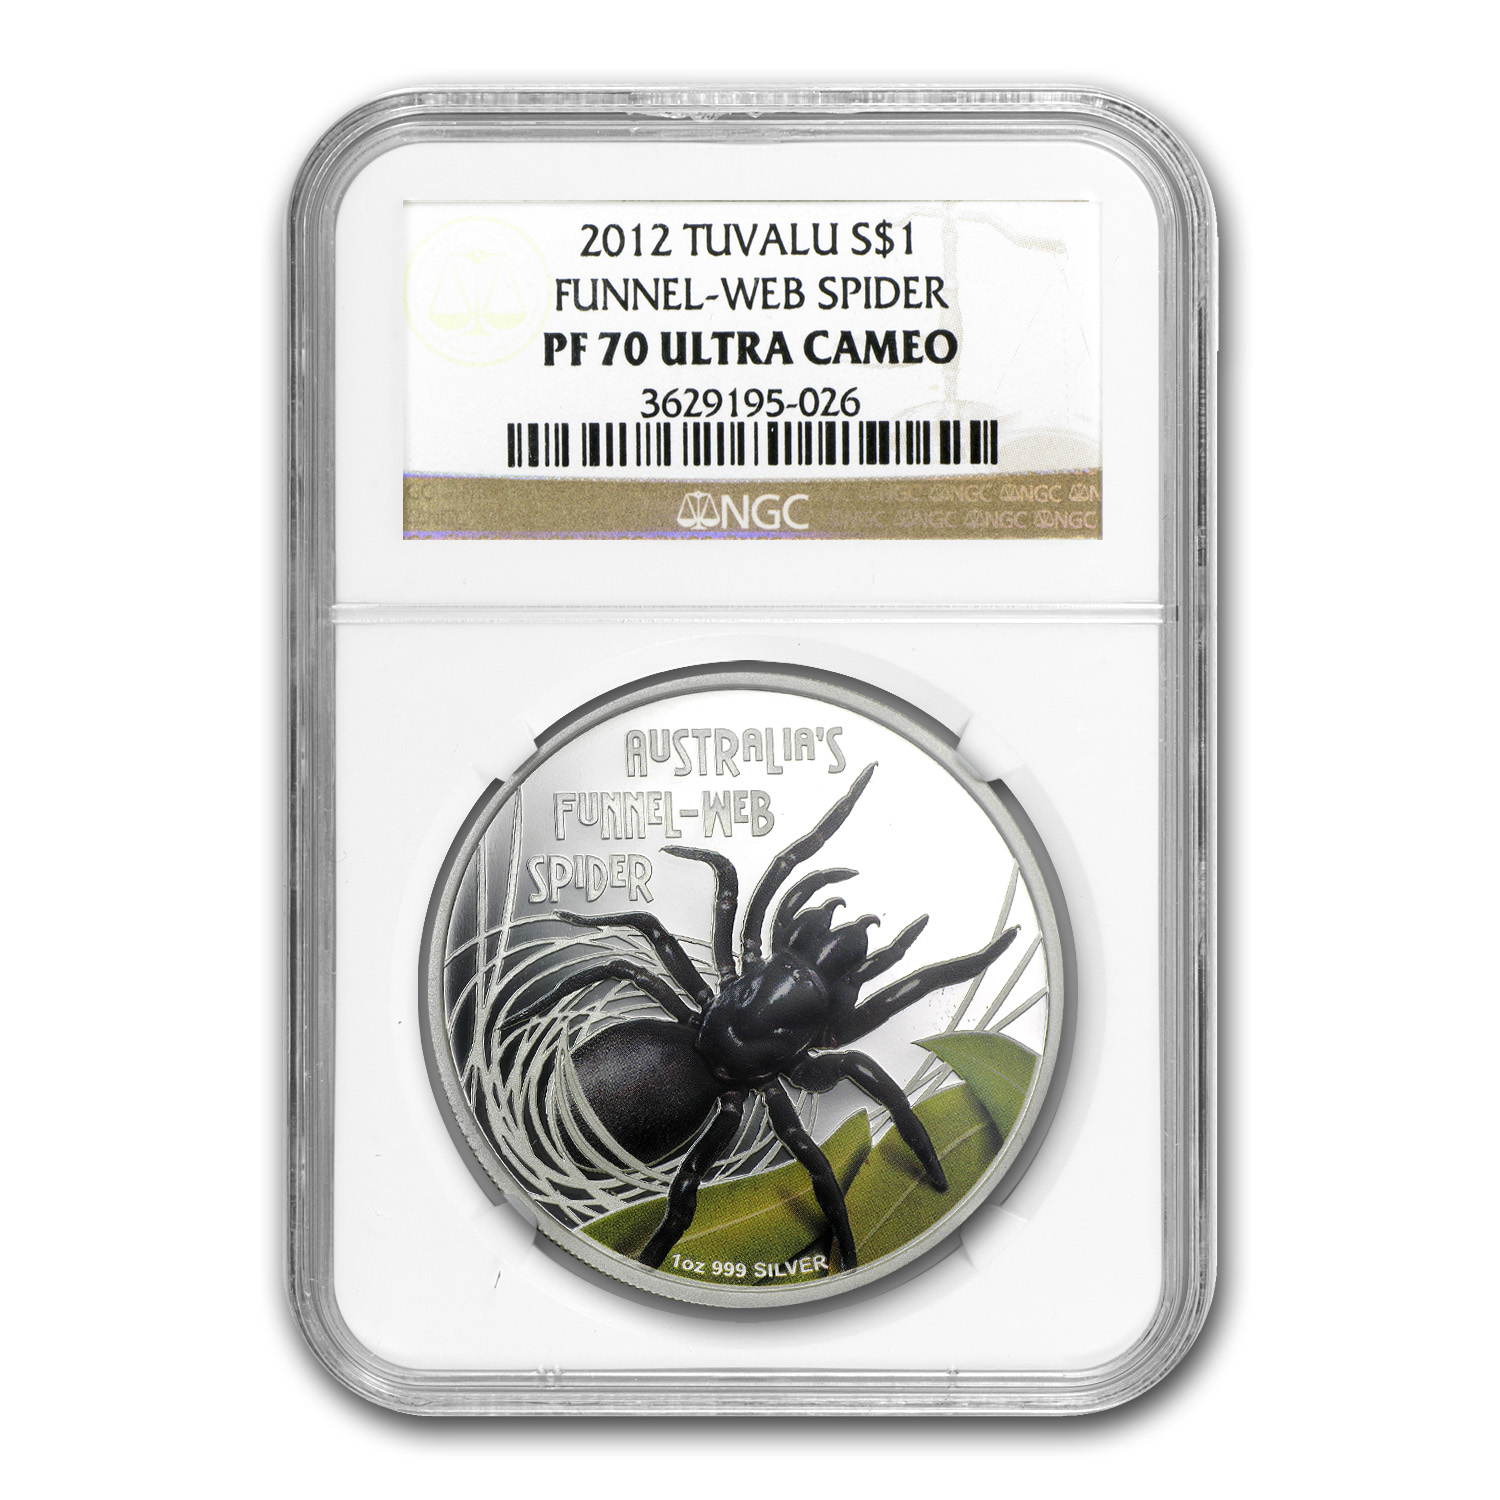 2012 1 oz Proof Silver Funnel Web Spider -NGC PF-70 UCAM